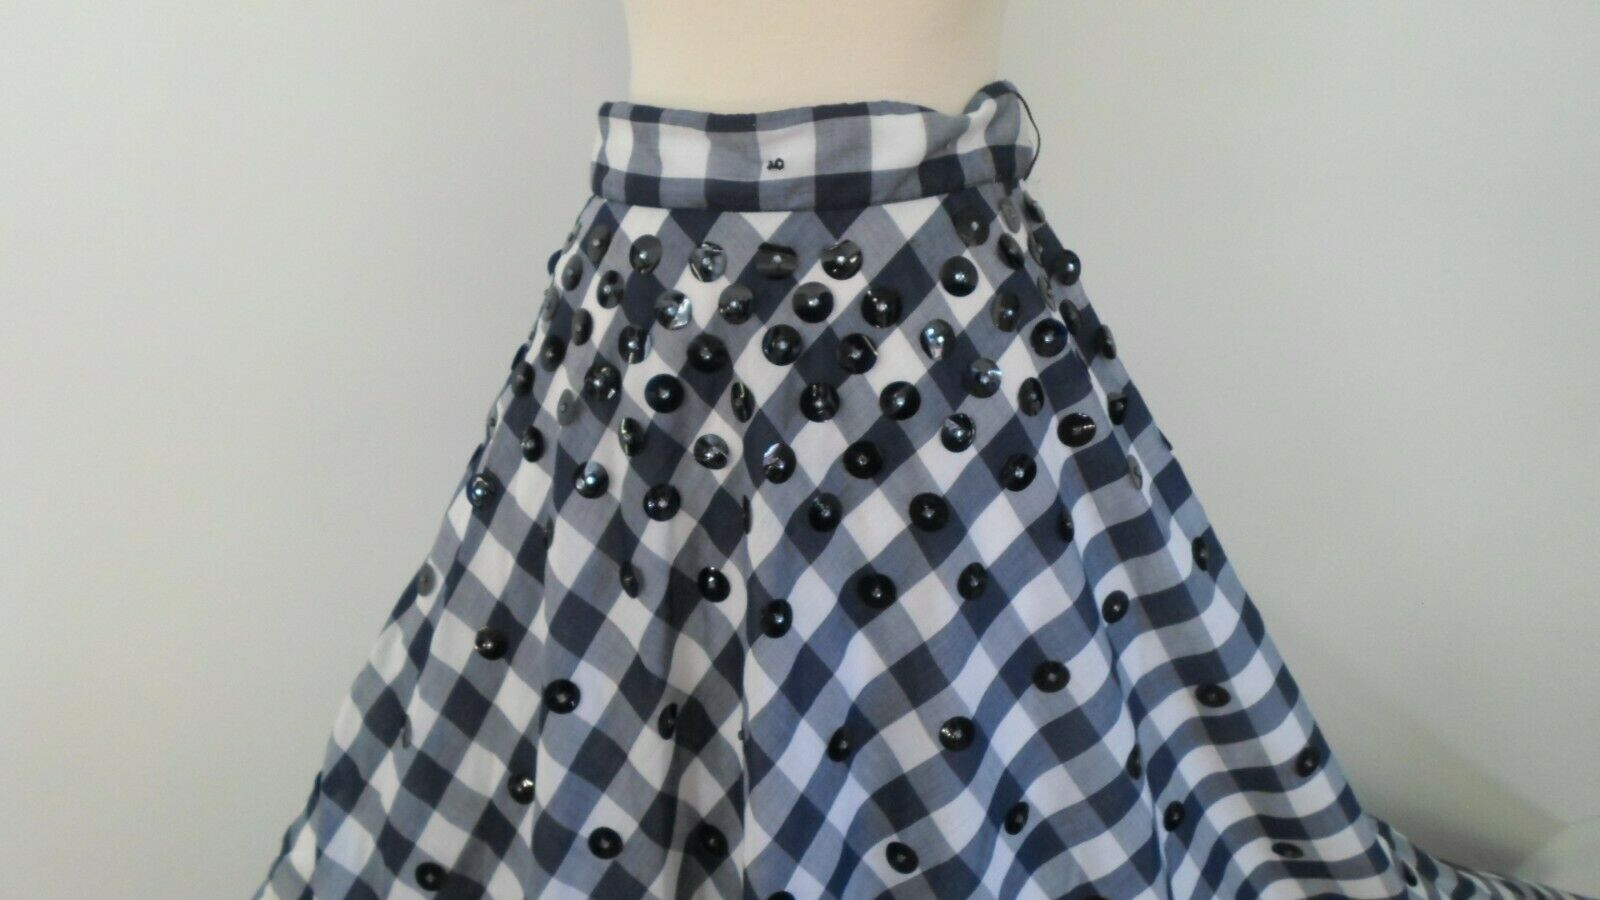 80s dress 1980s vintage TWO TONE GRAY white fit and flare  cotton full skirt dress